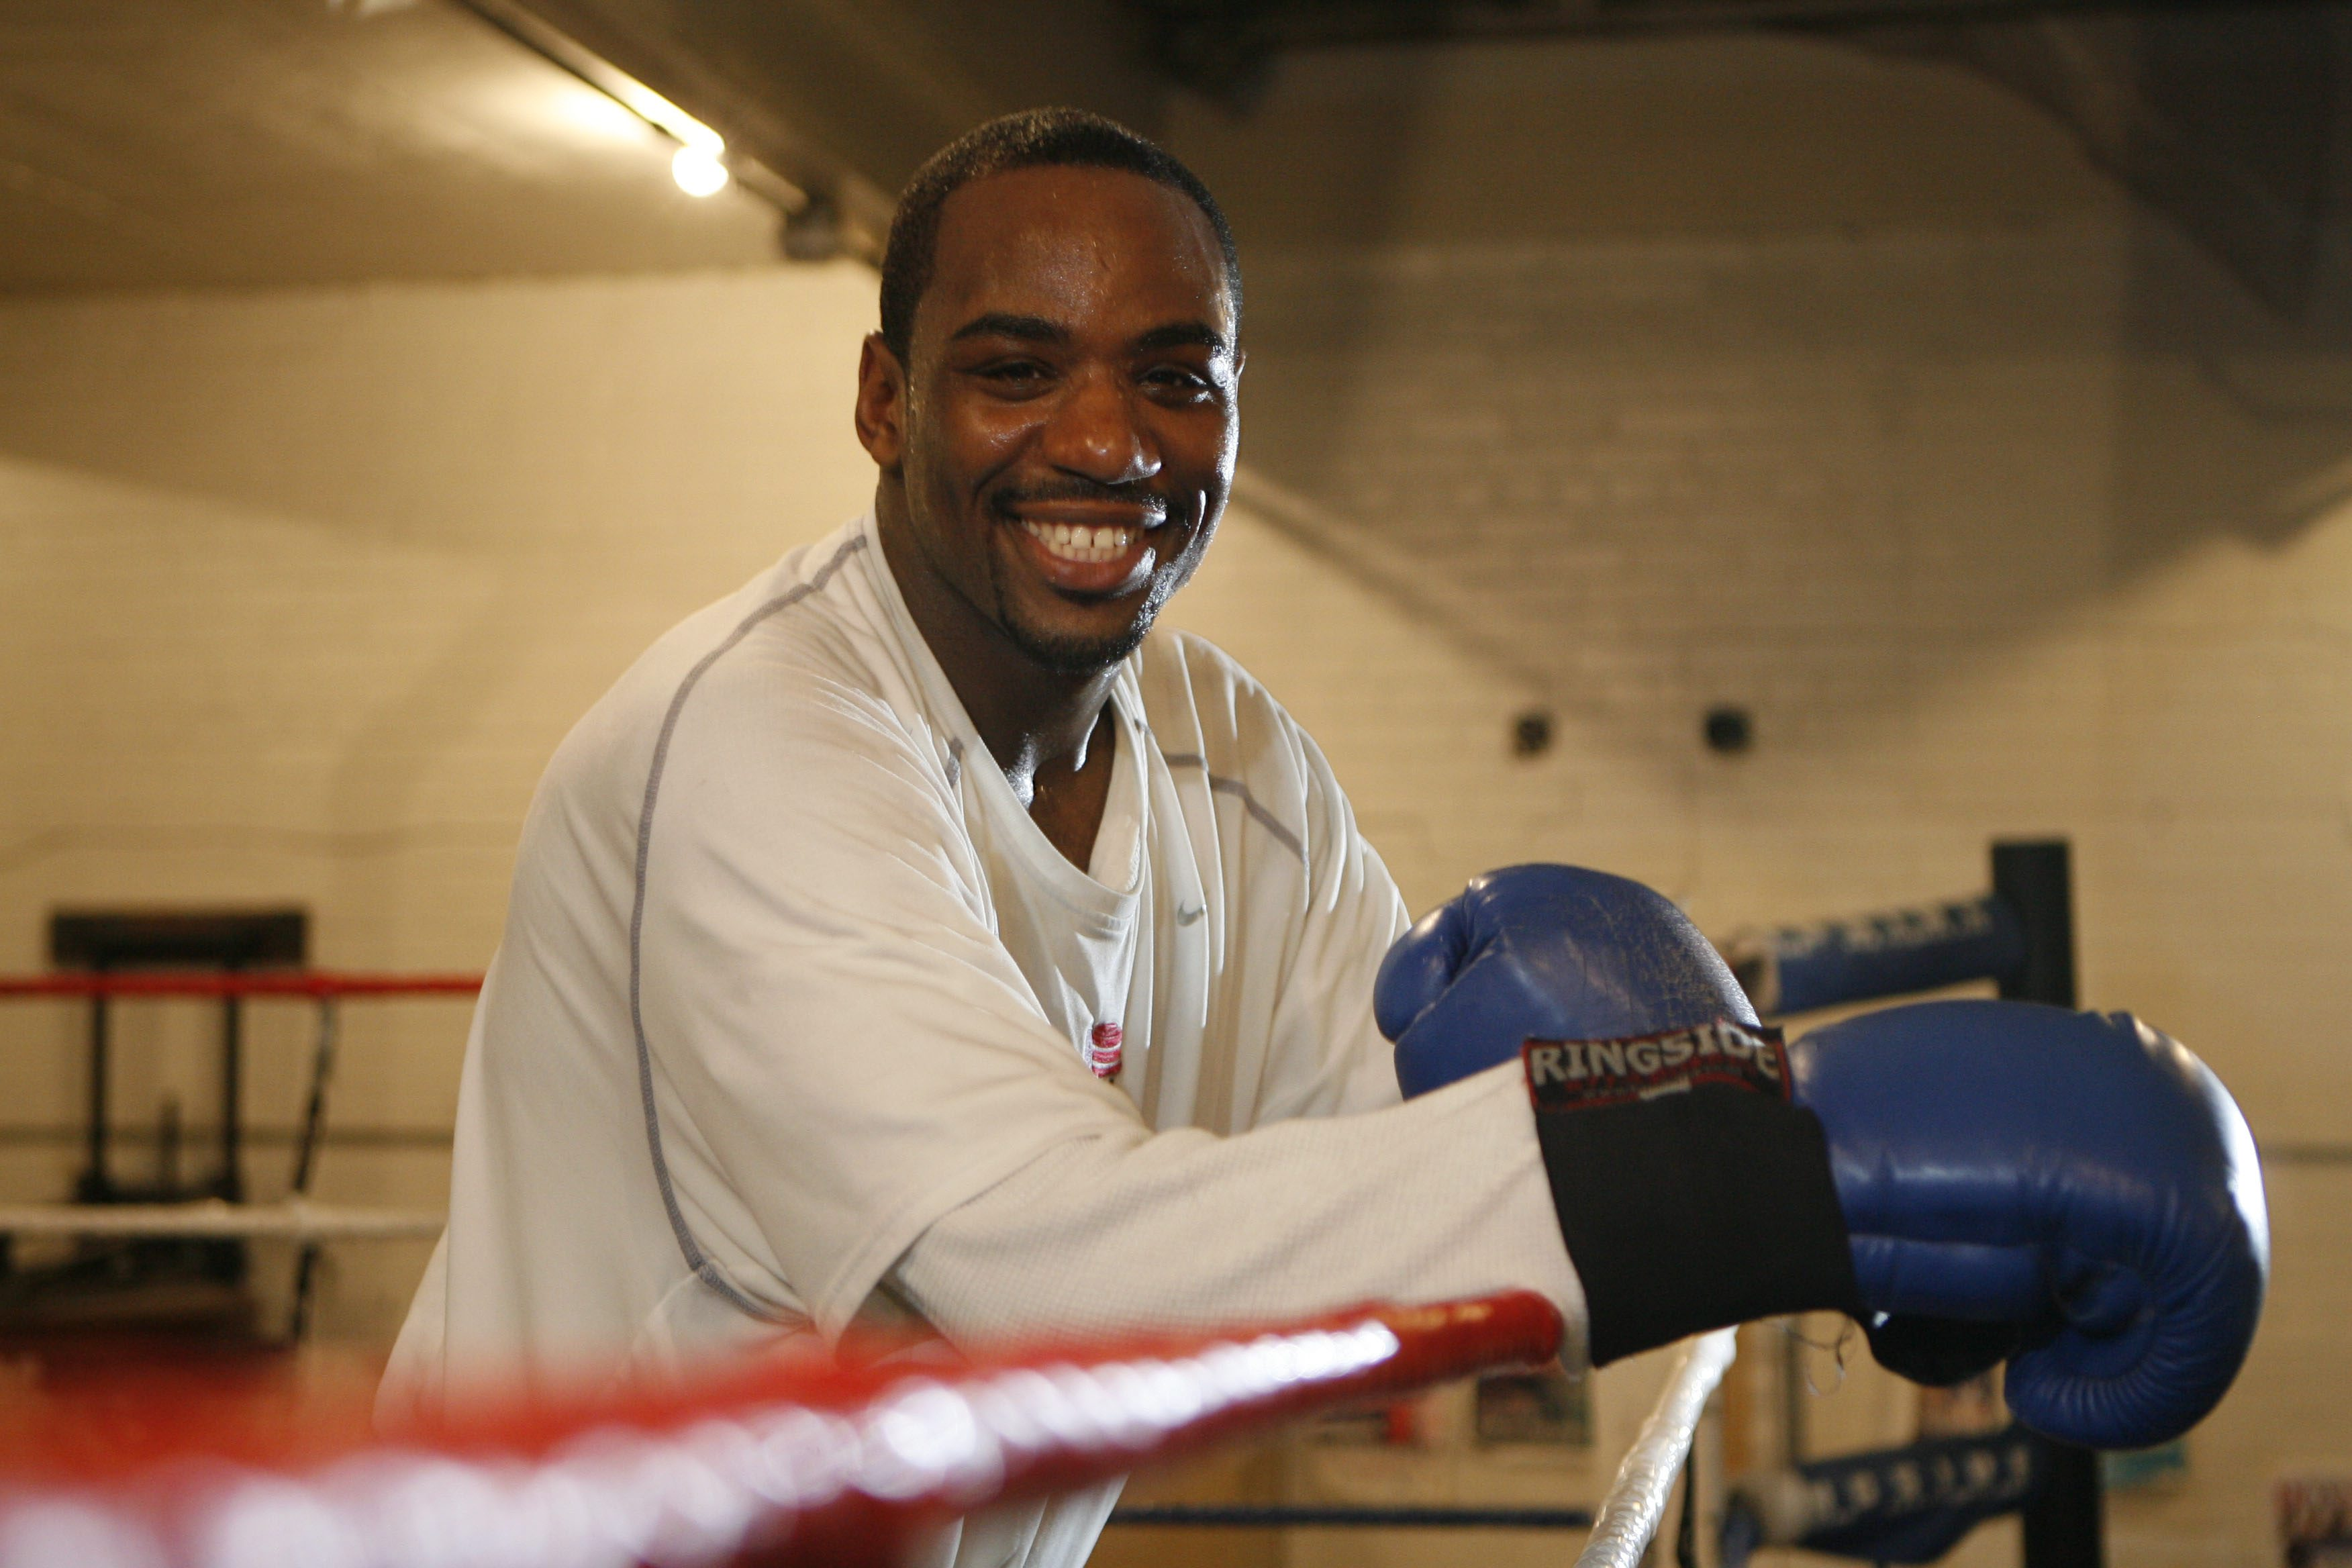 Multi-time state Golden Gloves champion Lionell Thompson will look for his 18th professional victory during a Feb. 24 boxing card that's part of Showtime's 'ShoBox: The New Generation' series. (Sharon Cantillon/Buffalo News file photo)